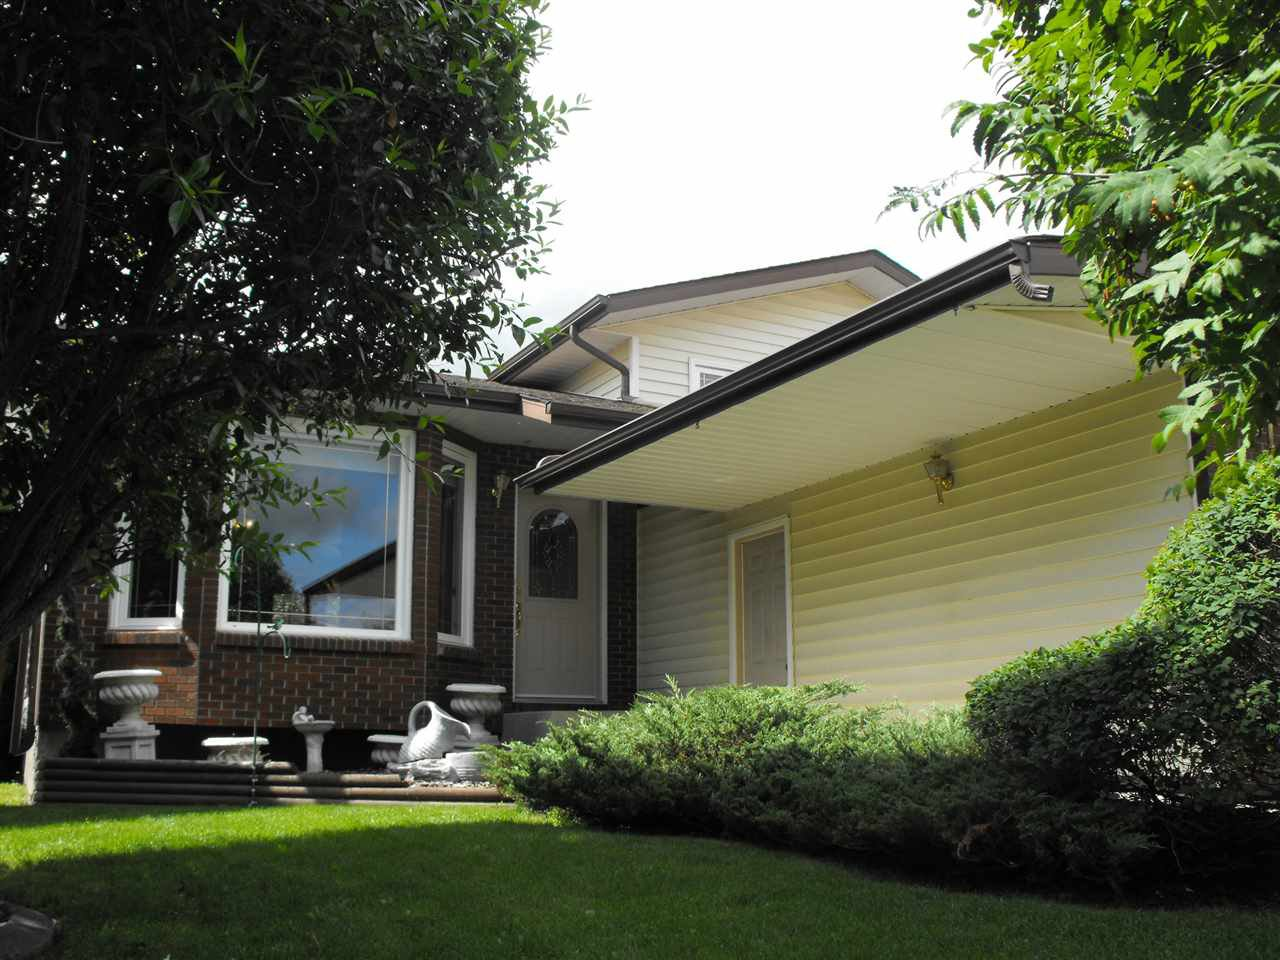 Main Photo: 5110 54A Street: Elk Point House for sale : MLS®# E4168734